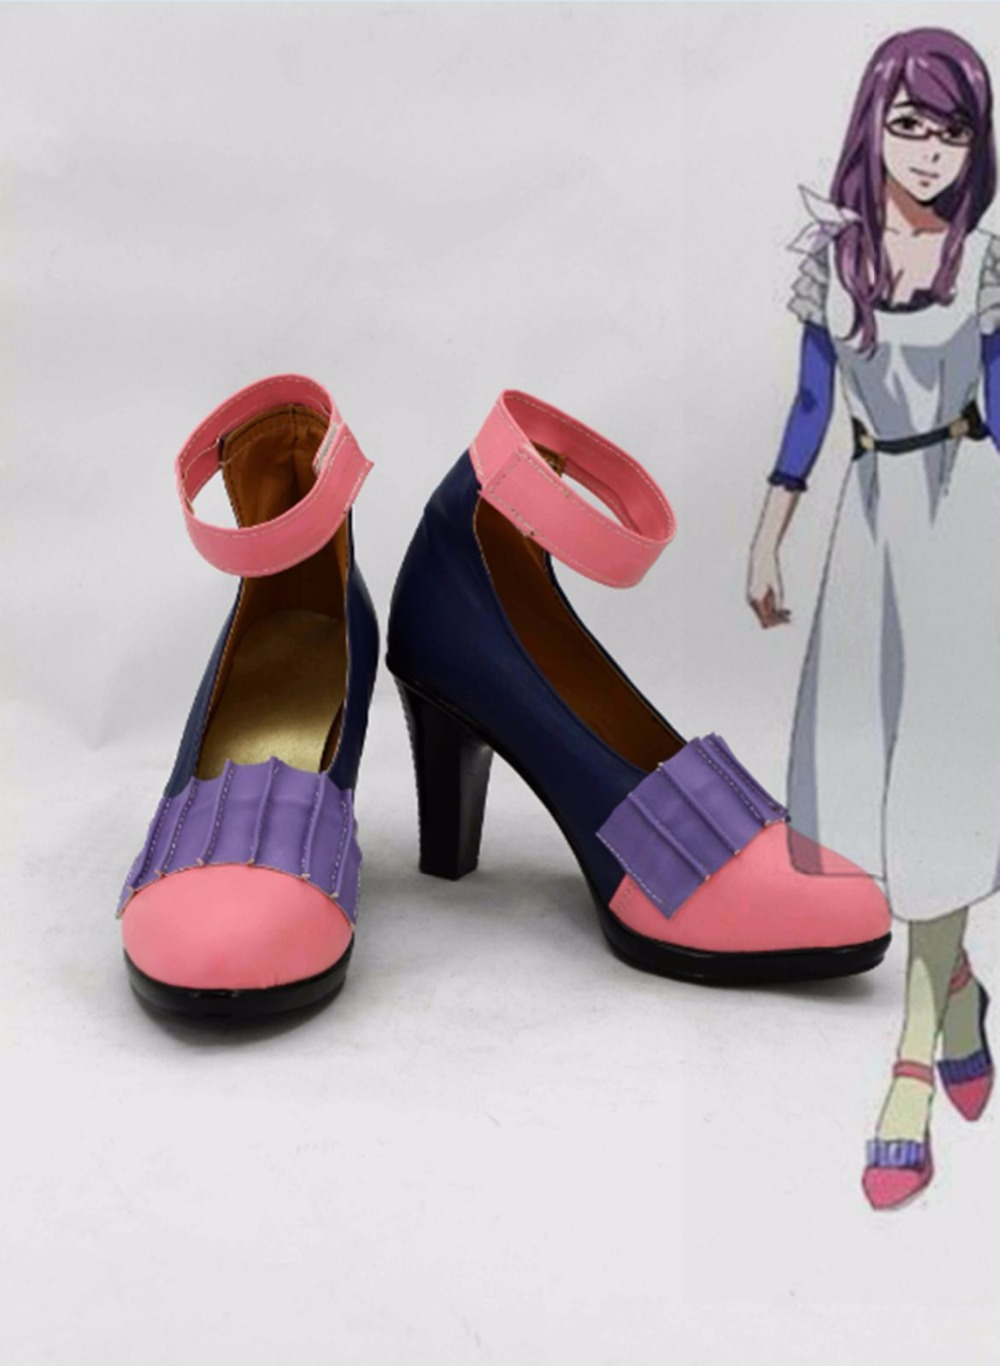 special sale New font b Anime b font Tokyo Ghoul Rize Kamishiro Boots font b Cosplay